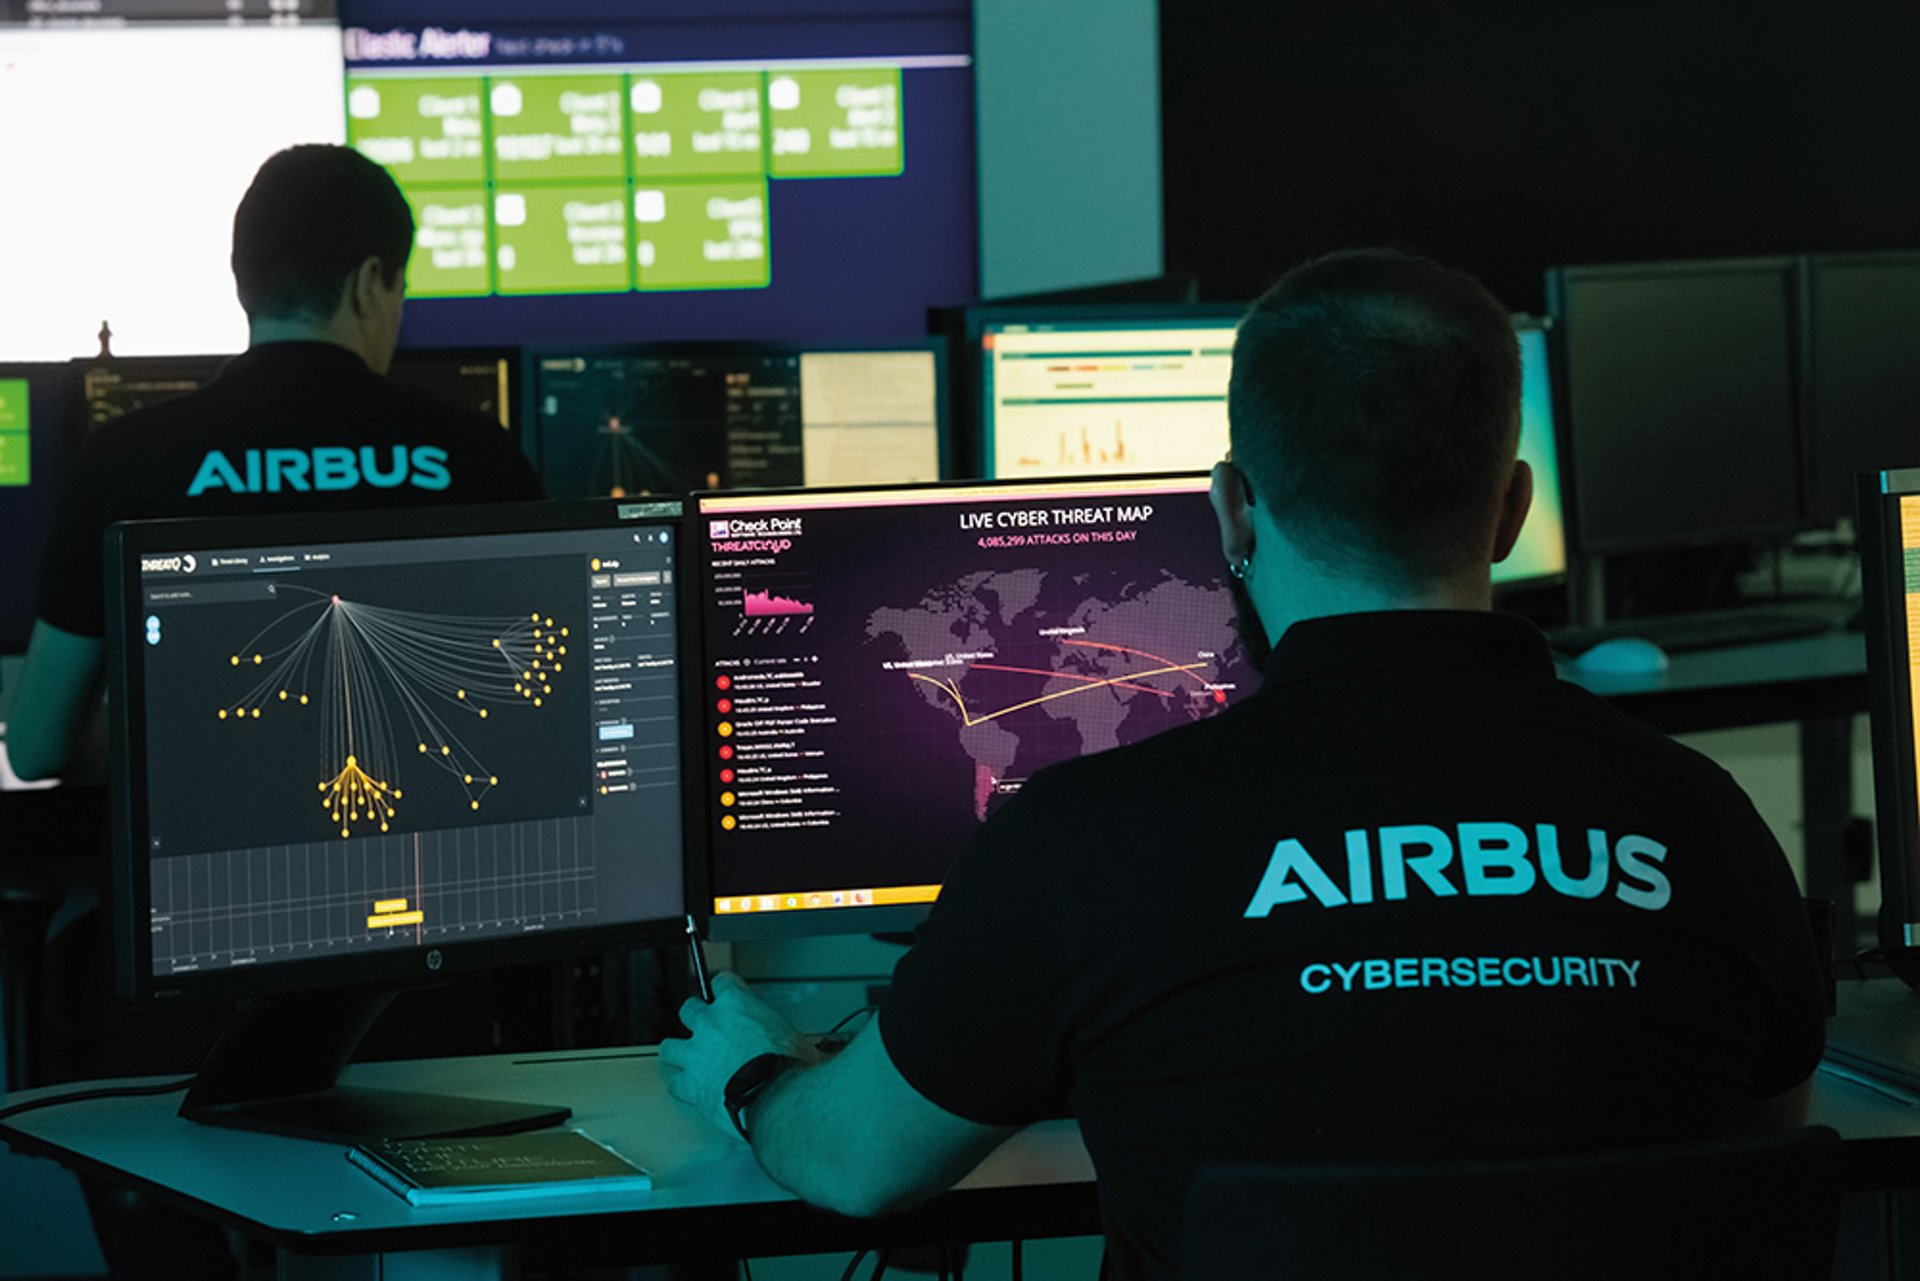 """Airbus """"cyber bodyguards"""" provide peace of mind during the COVID-19 pandemic"""